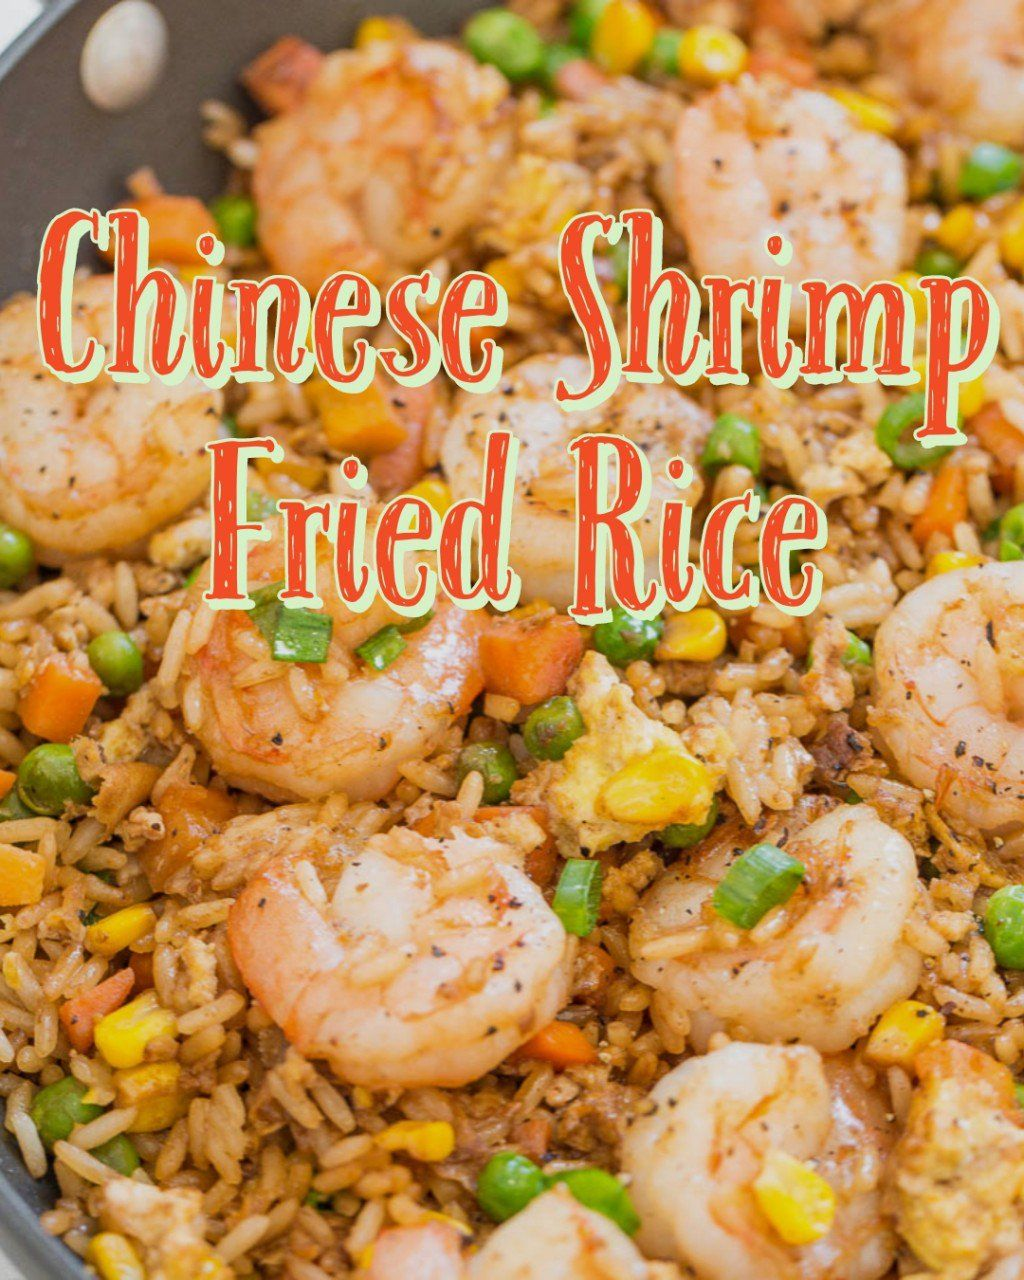 Easy Chinese Shrimp Fried Rice Made At Home Chinese Shrimp Fried Rice Easy Rice Recipes Fried Rice